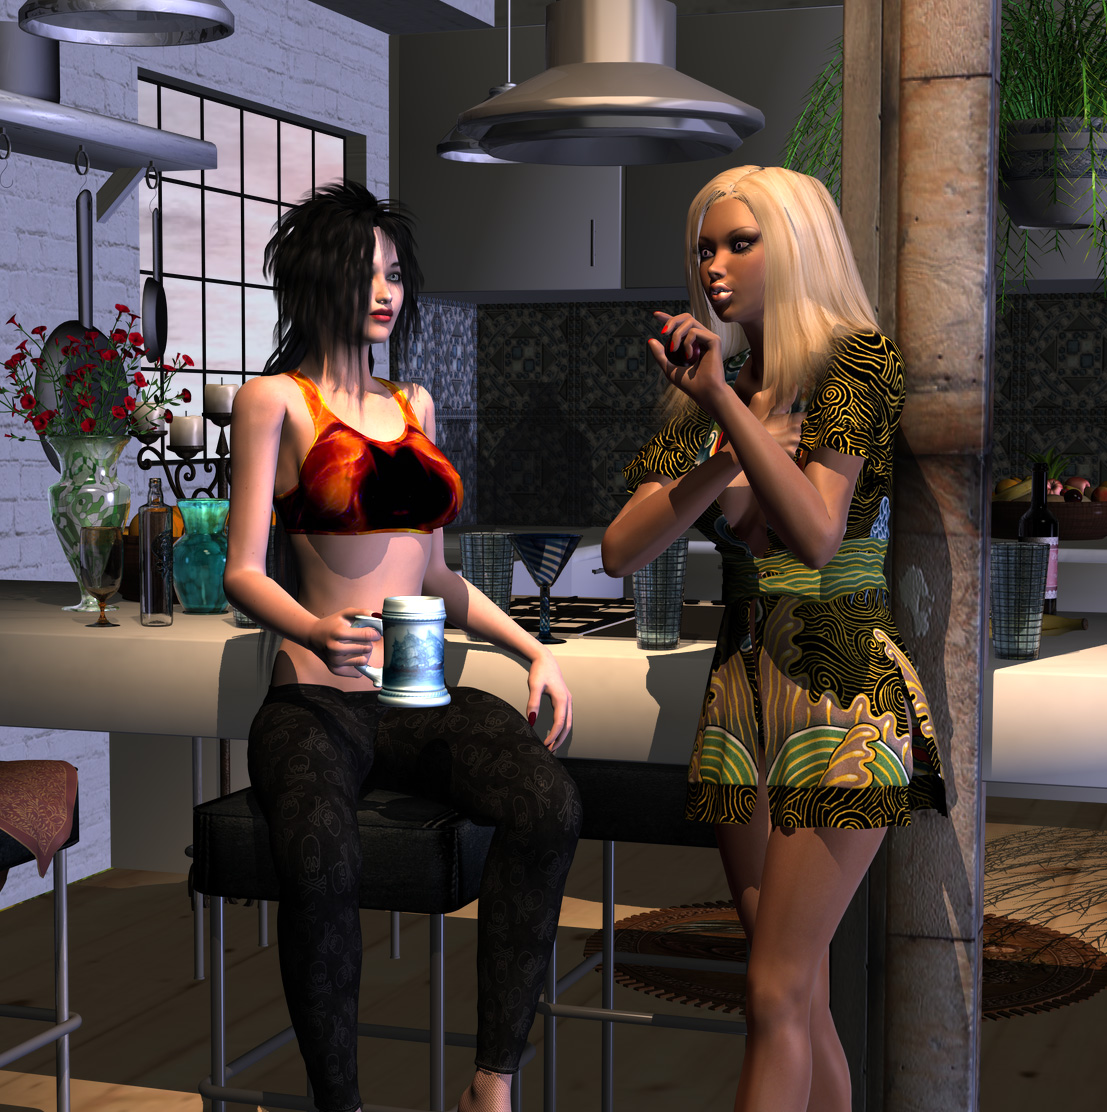 Lourdes and Gaetania in the kitchen by LuckyLilith